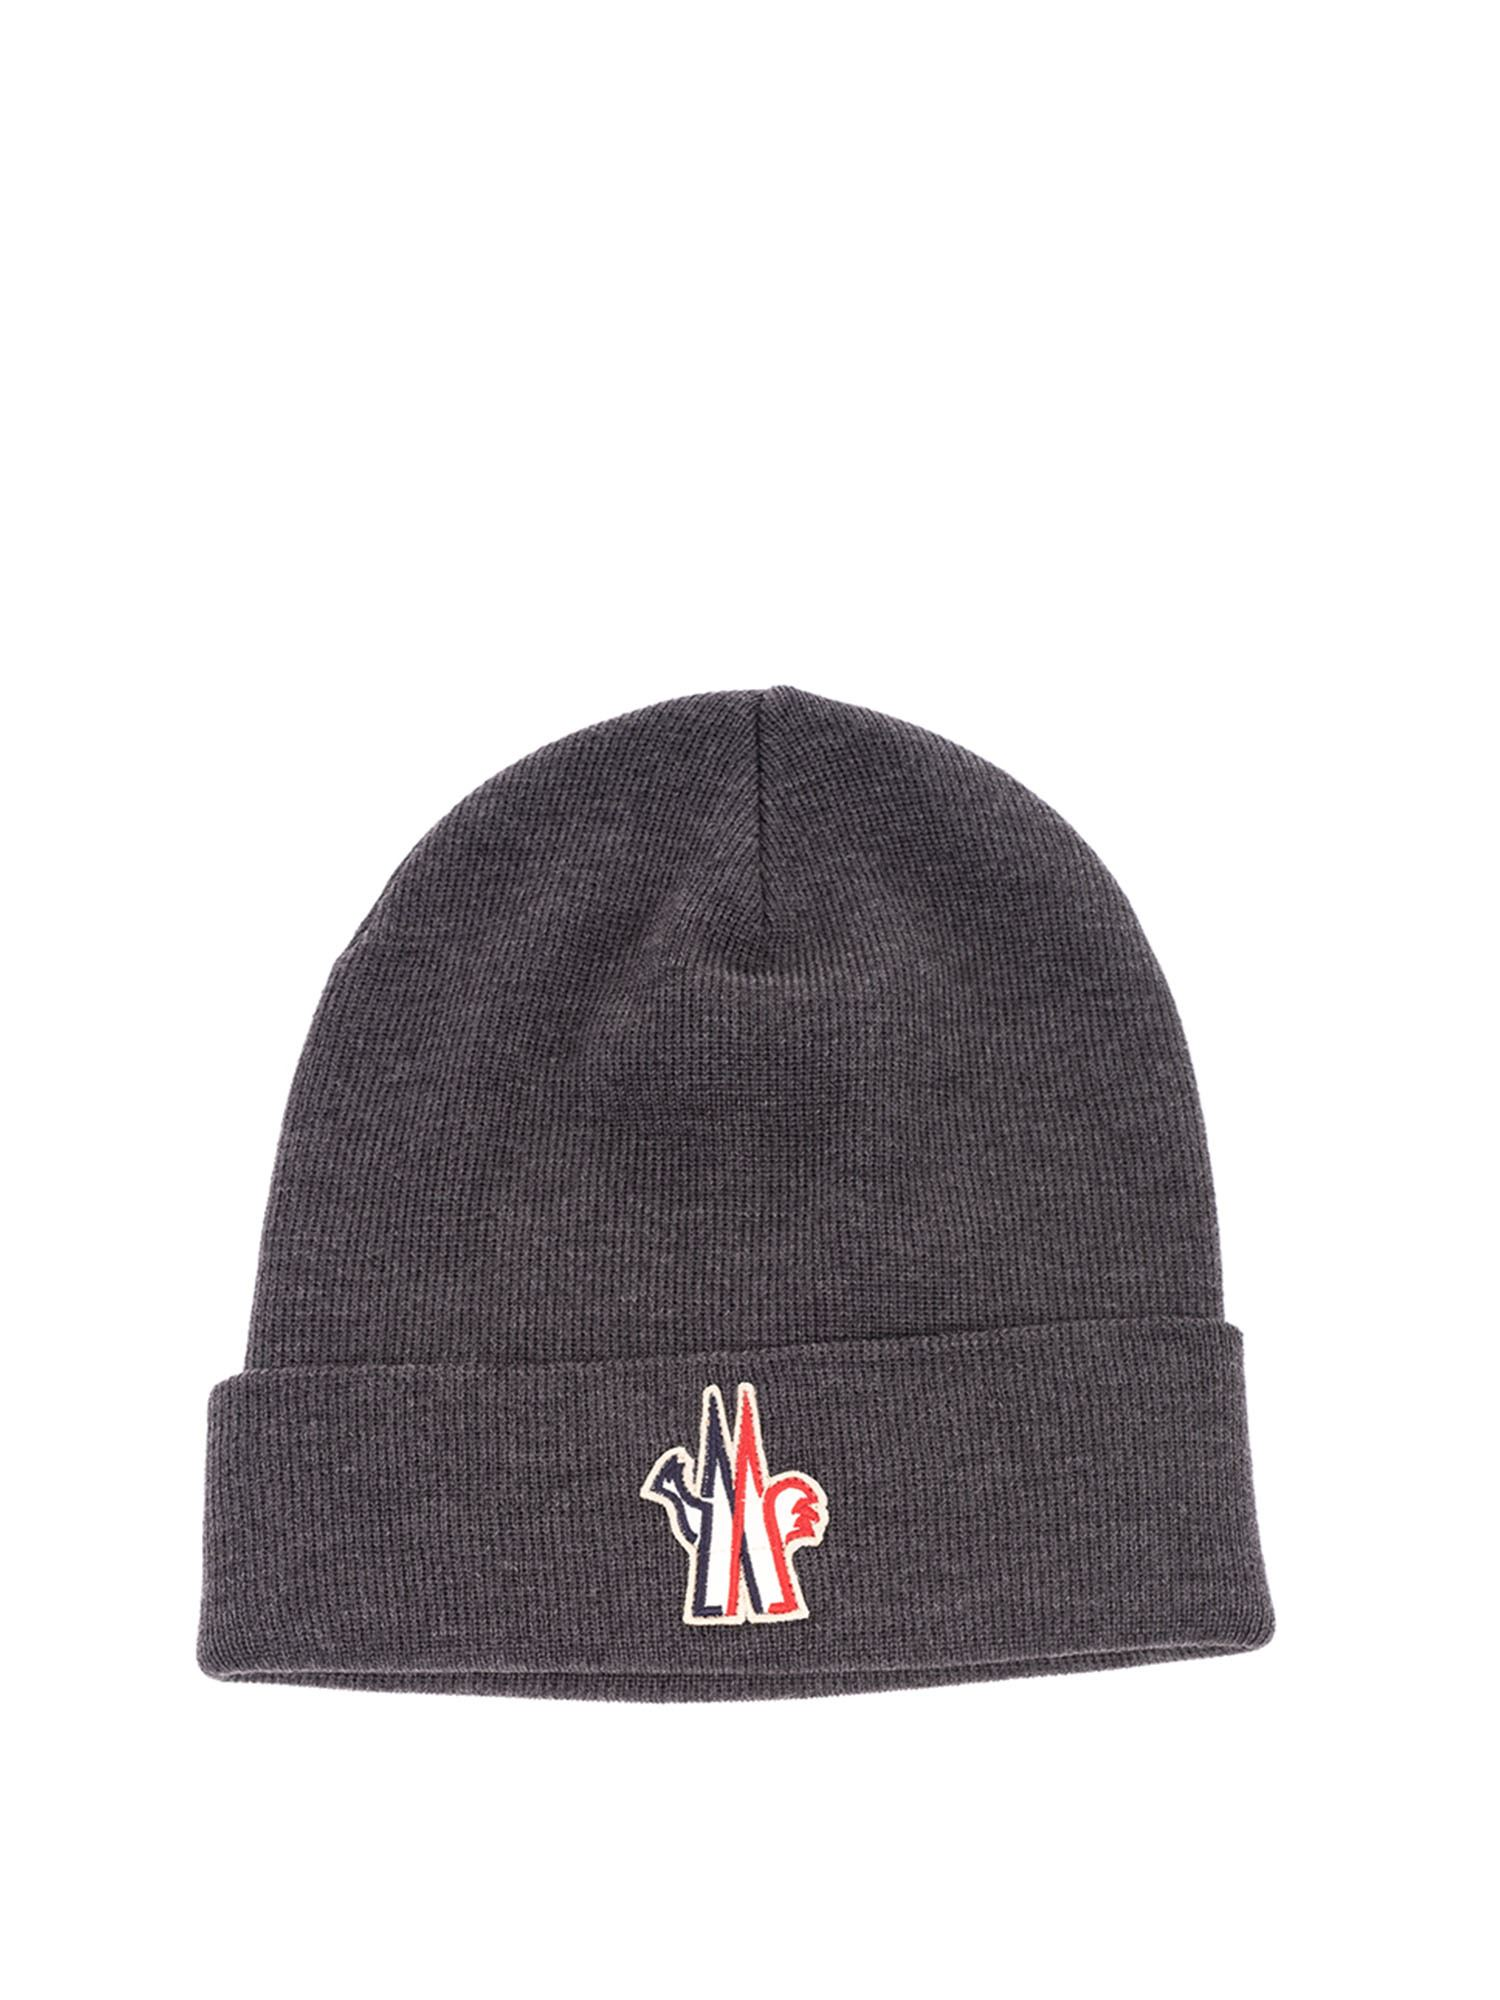 Moncler Grenoble RIBBED BEANIE IN GREY